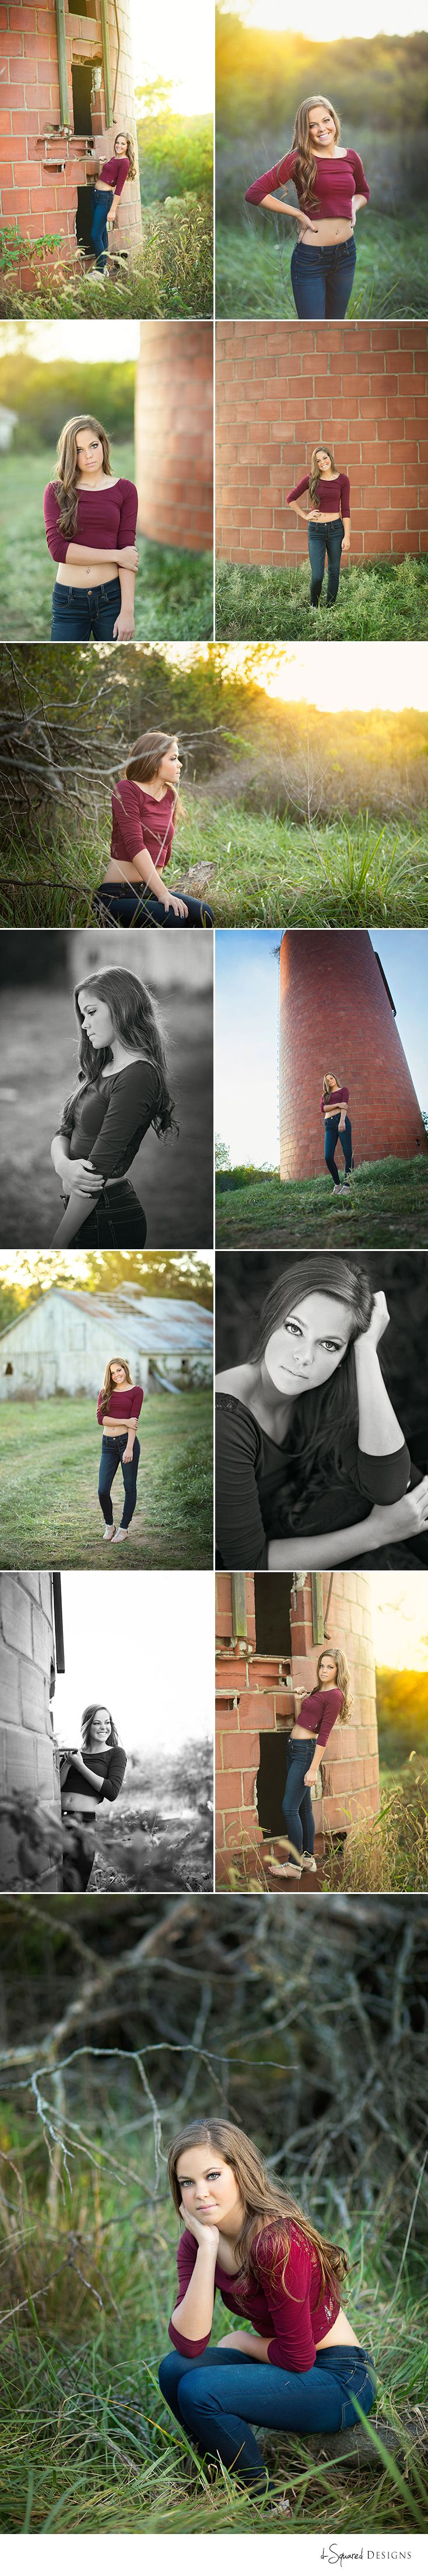 d-Squared Designs Southeast MO Senior Photography